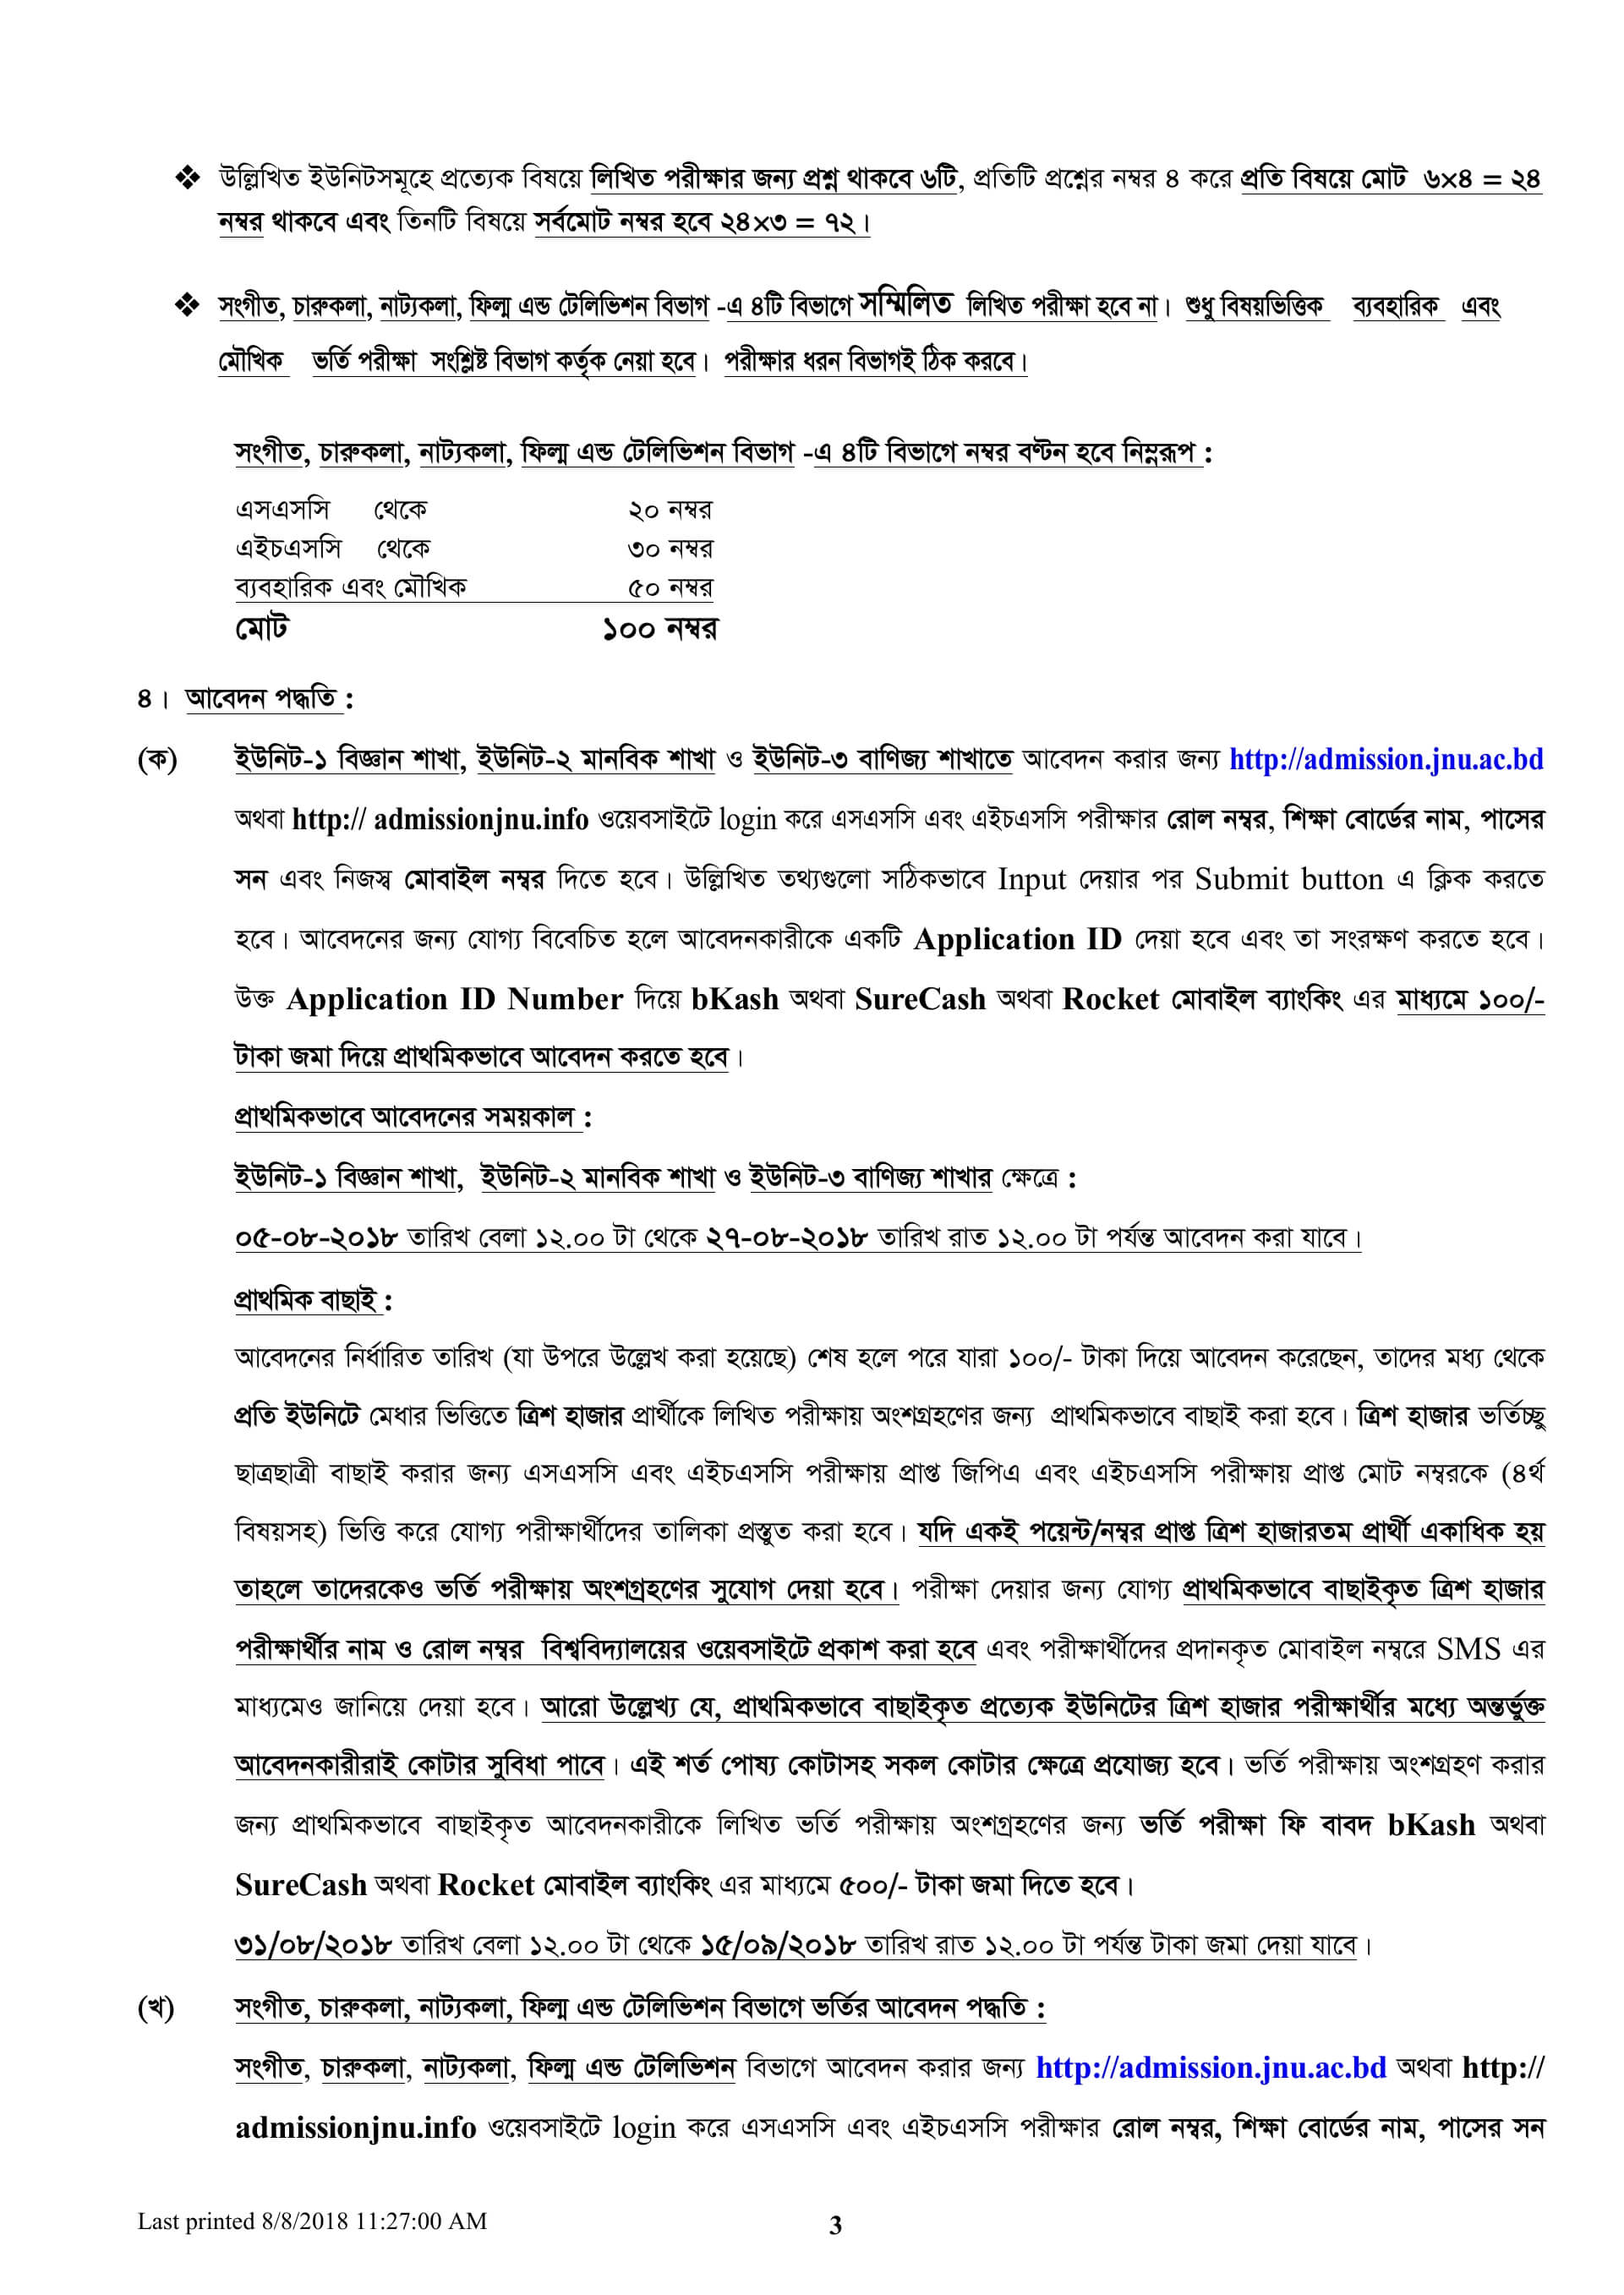 Jagannath University Admission Guideline-2